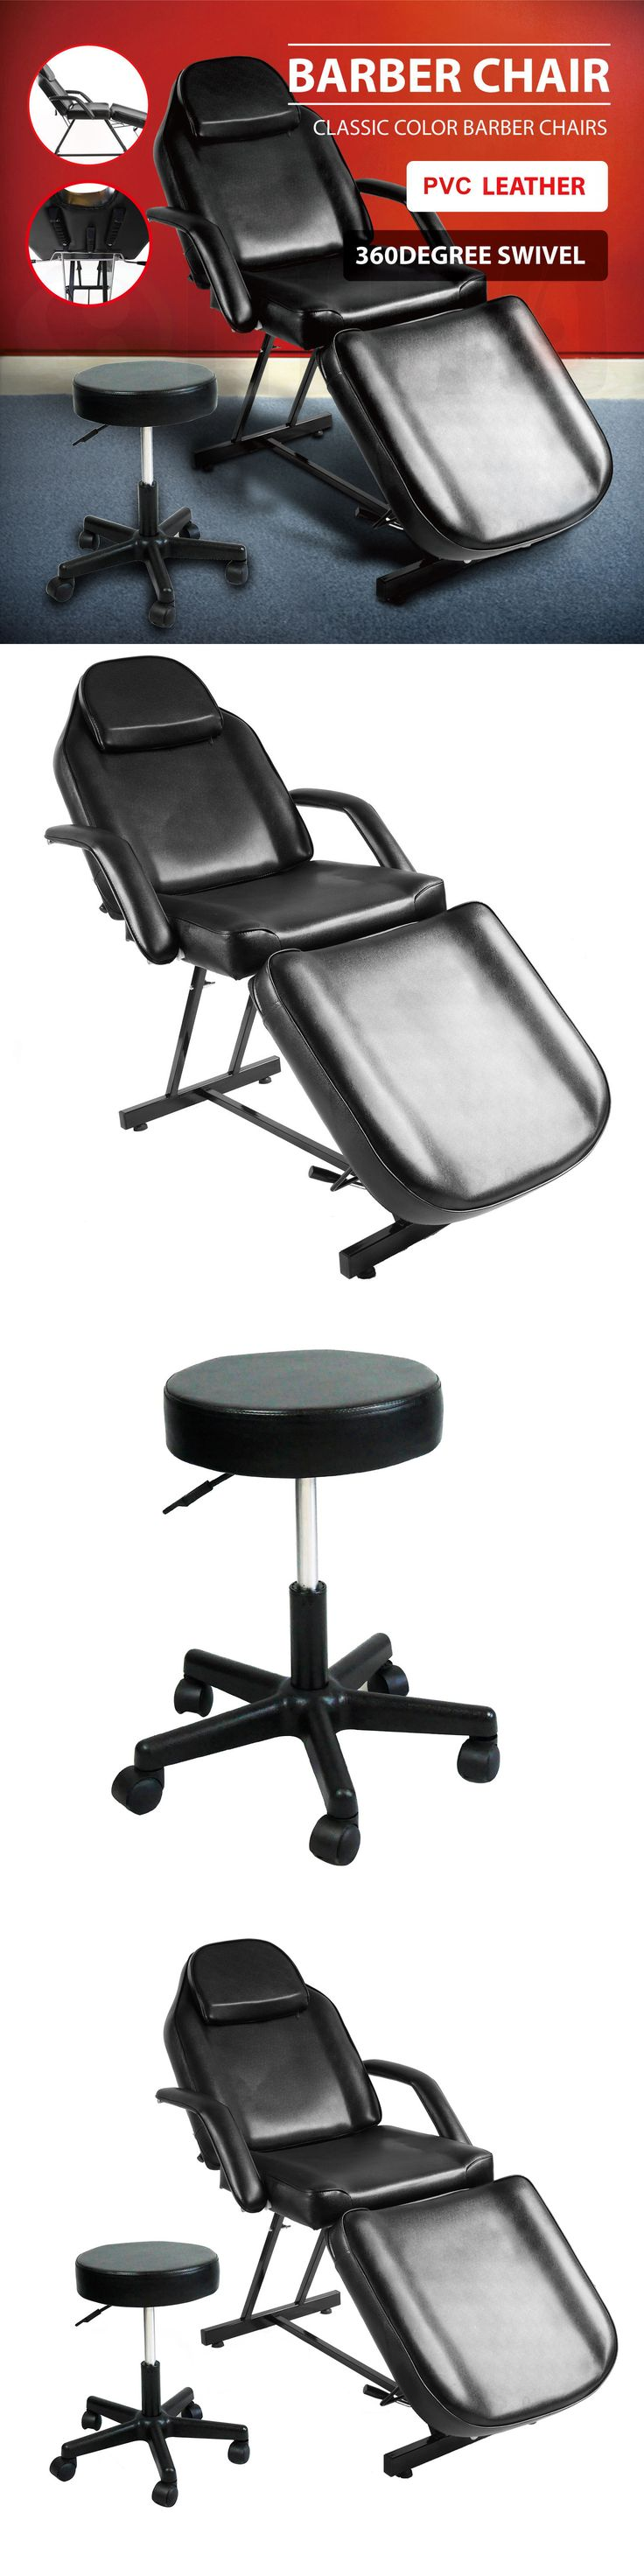 Stylist Stations and Furniture: Hydraulic Massage Bed Chairandstool Beauty Spa Tattoo Salon Equipment Adjustable BUY IT NOW ONLY: $161.9